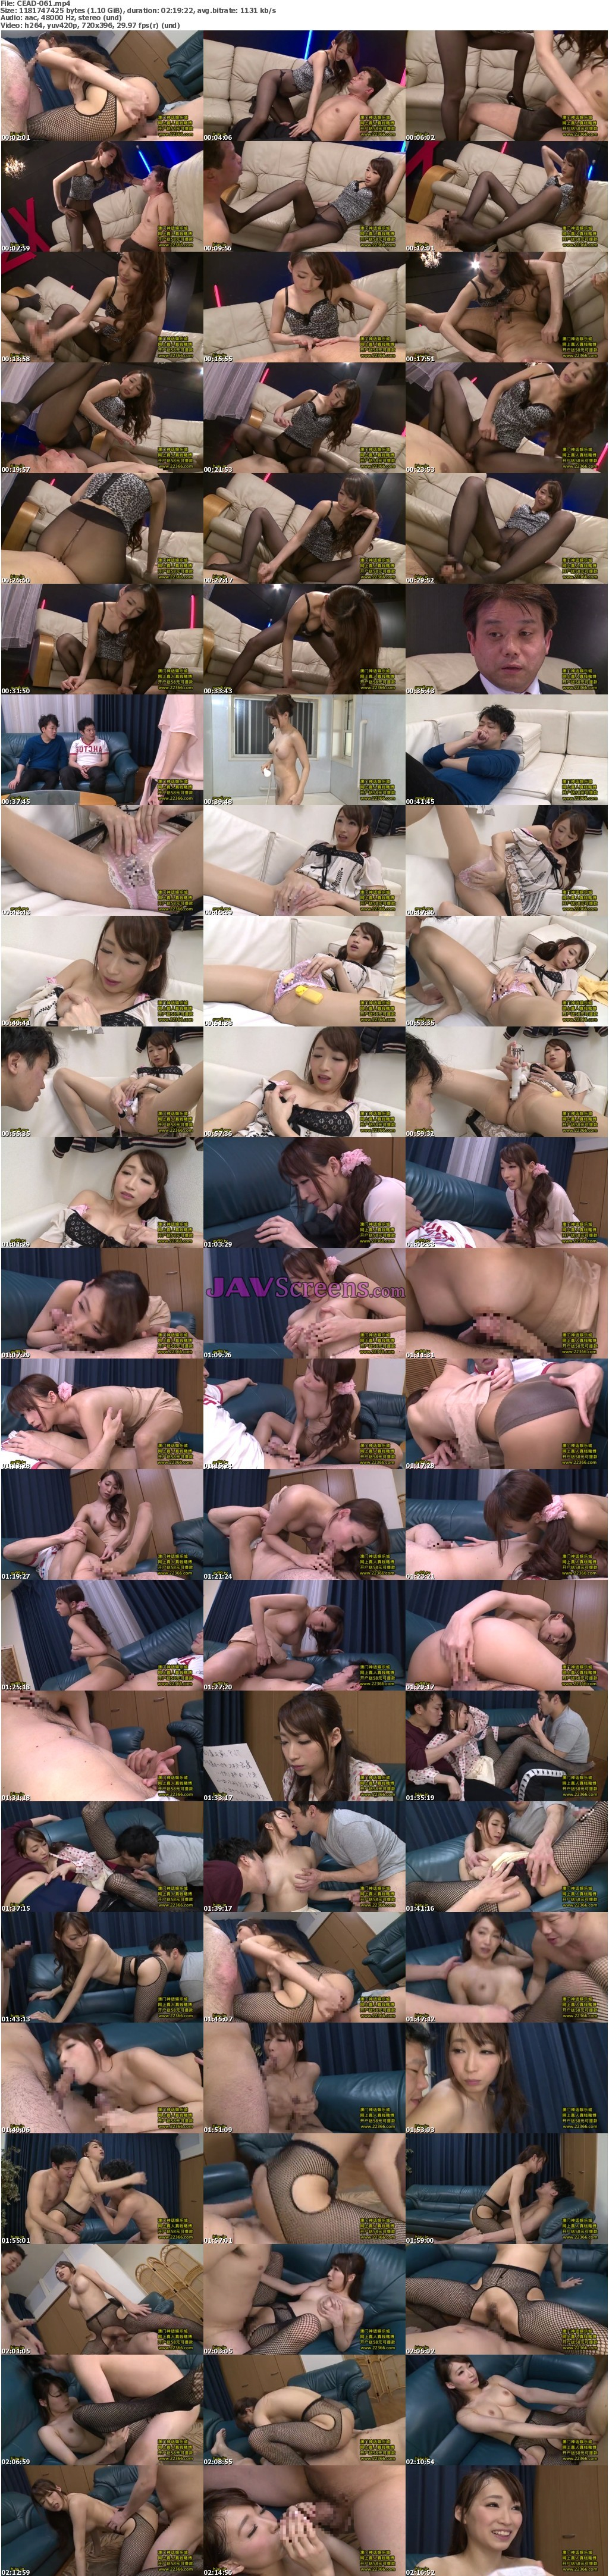 CEAD-061.jpg - JAV Screenshot